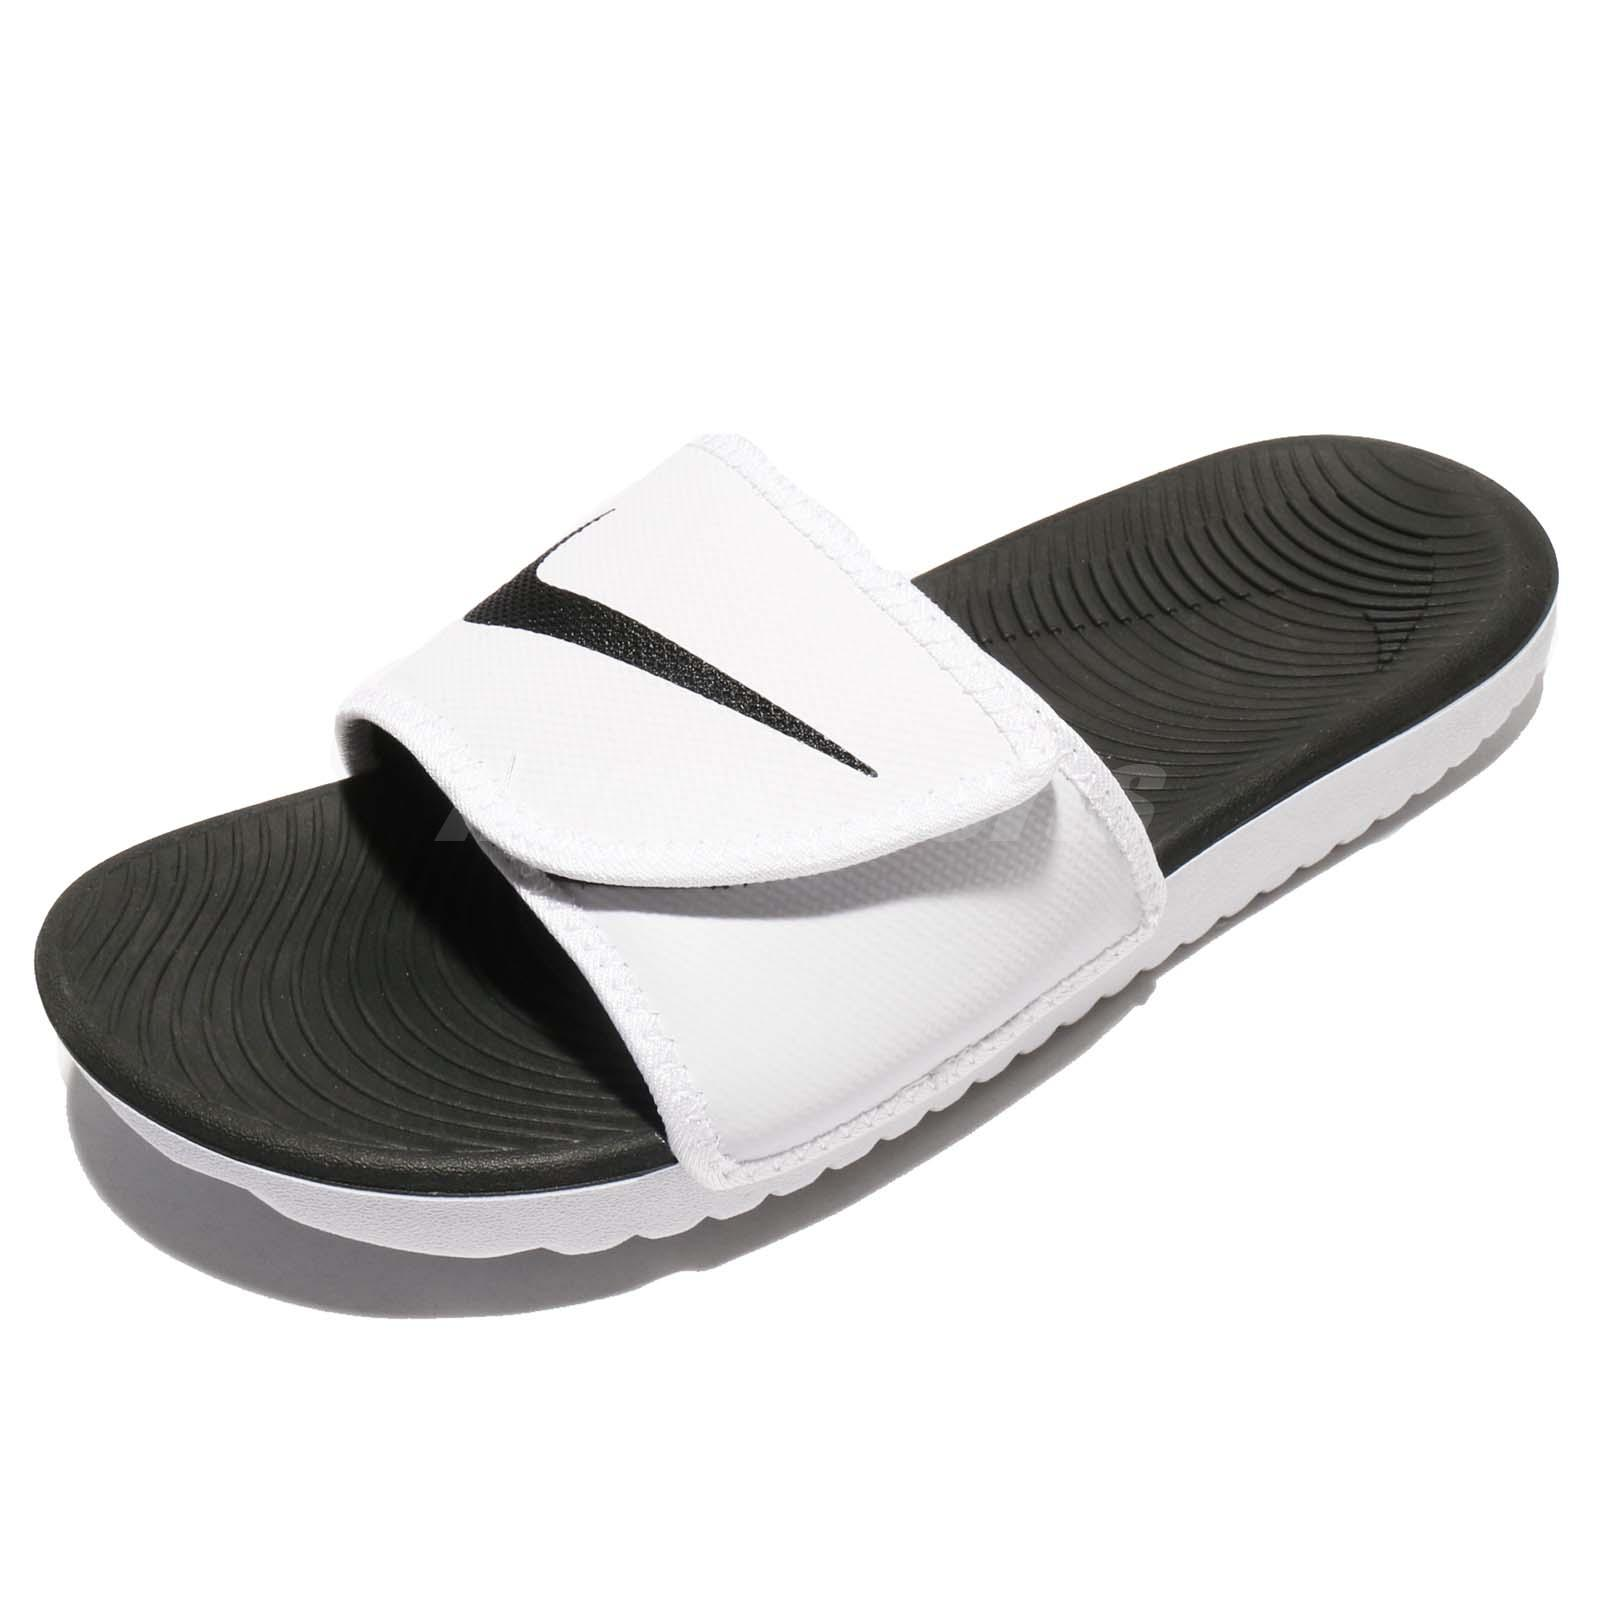 Nike Kawa Adjust White Black Solarsoft Men Strap Sandal Slides 834818-101